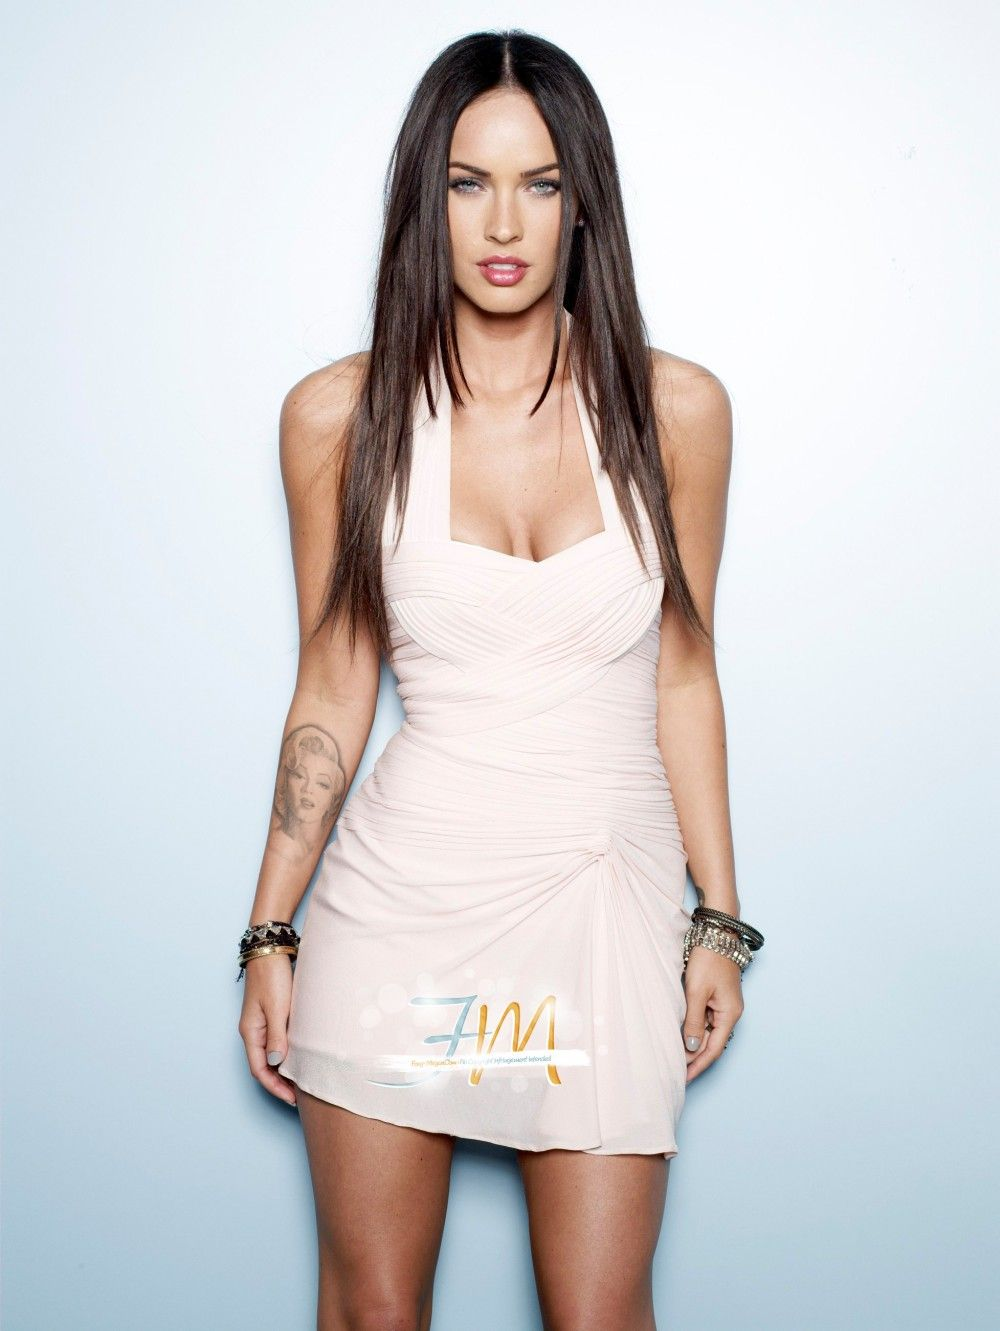 Redbalcony High Quality Picture Of Megan Fox Megan Fox Transformers Megan Fox Hot Megan Fox Photos [ 1331 x 1000 Pixel ]